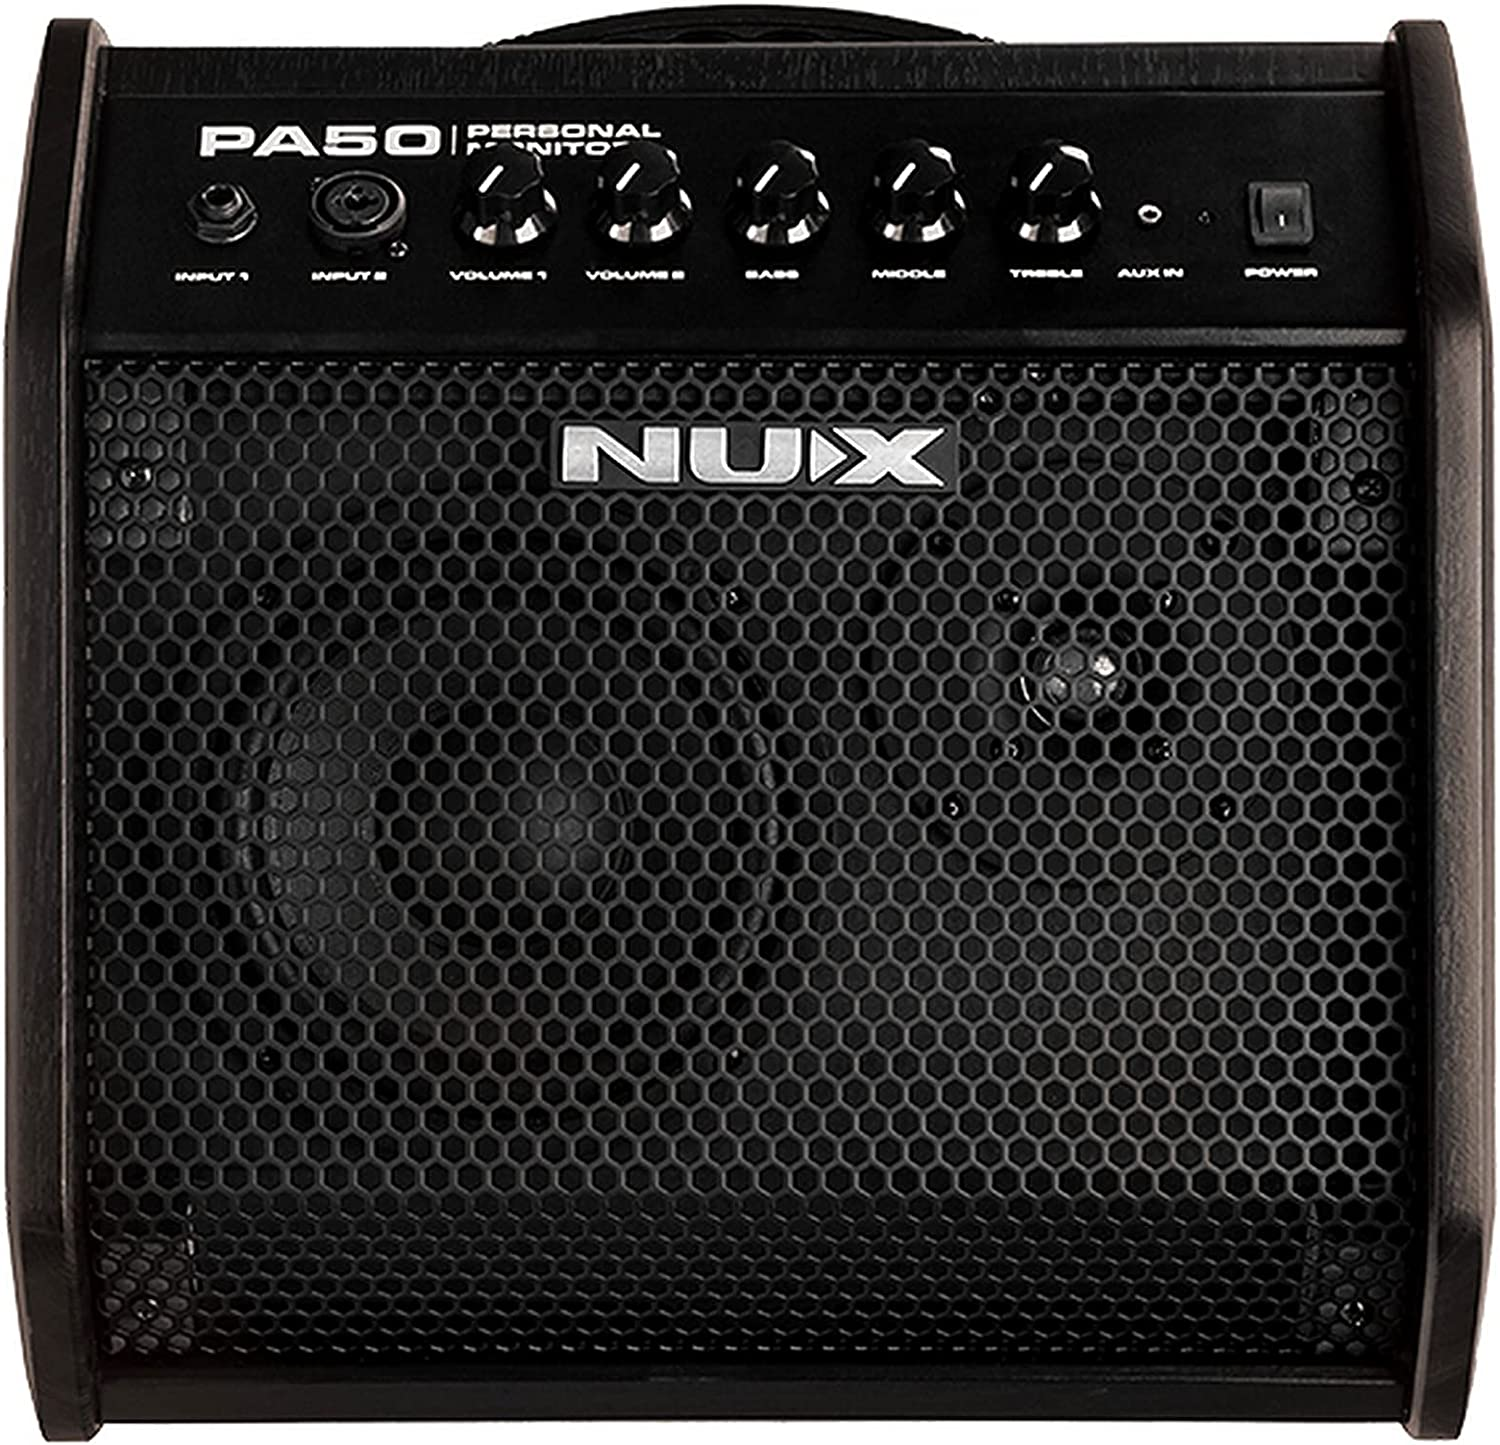 Large Super Special SALE held special price NUX PA-50 Personal Monitor 50 Watt 2 Channel Amplifier